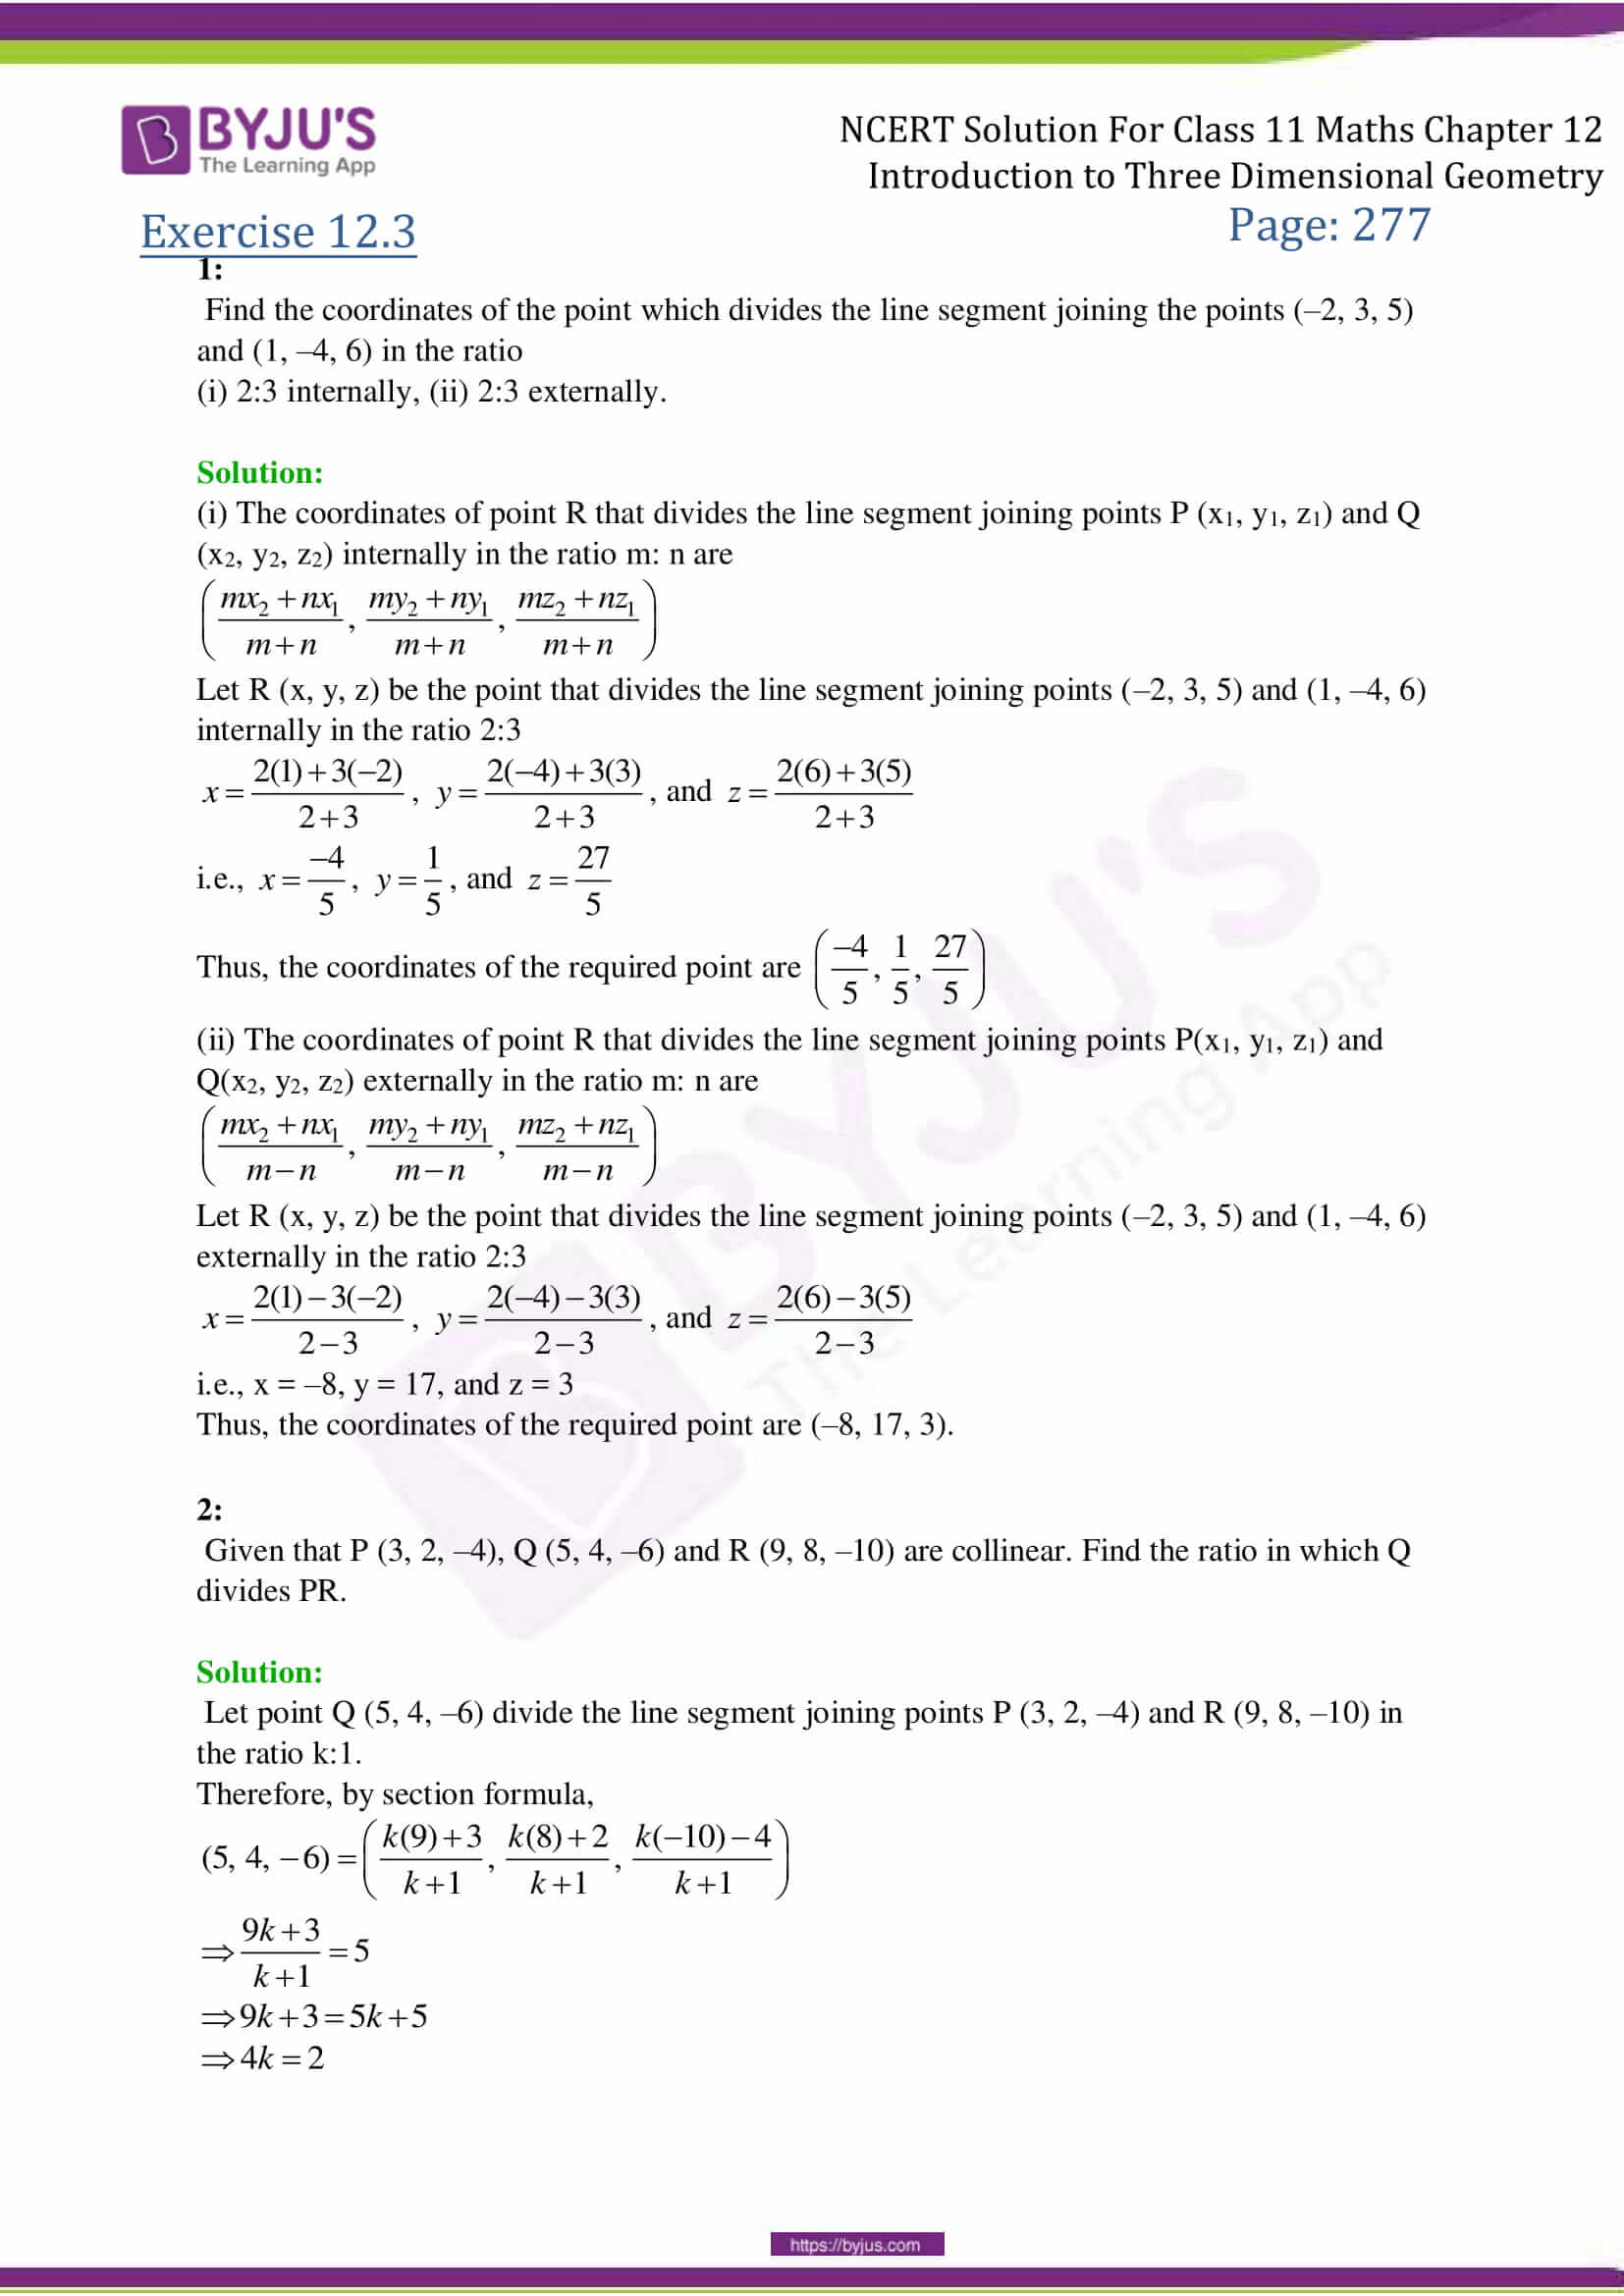 NCERT Solutions Class 11 Maths Chapter 12 Introduction to 3-D